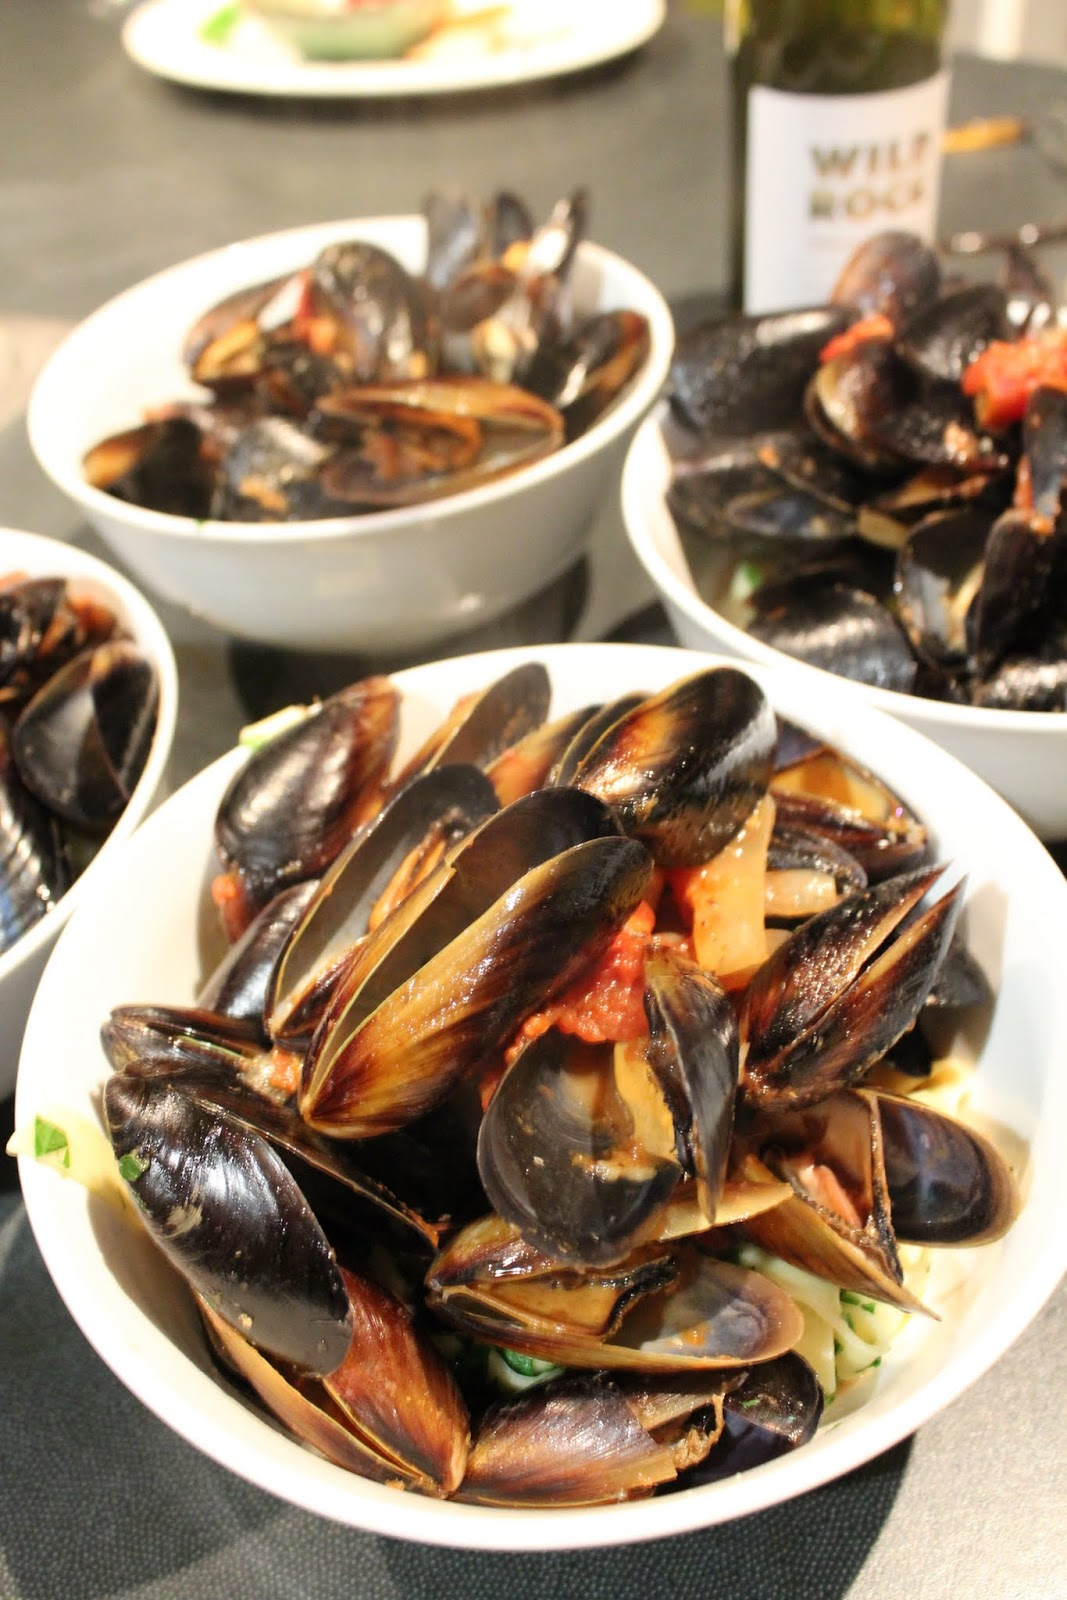 Kitchen Confidential - Mussel magic from South Australia